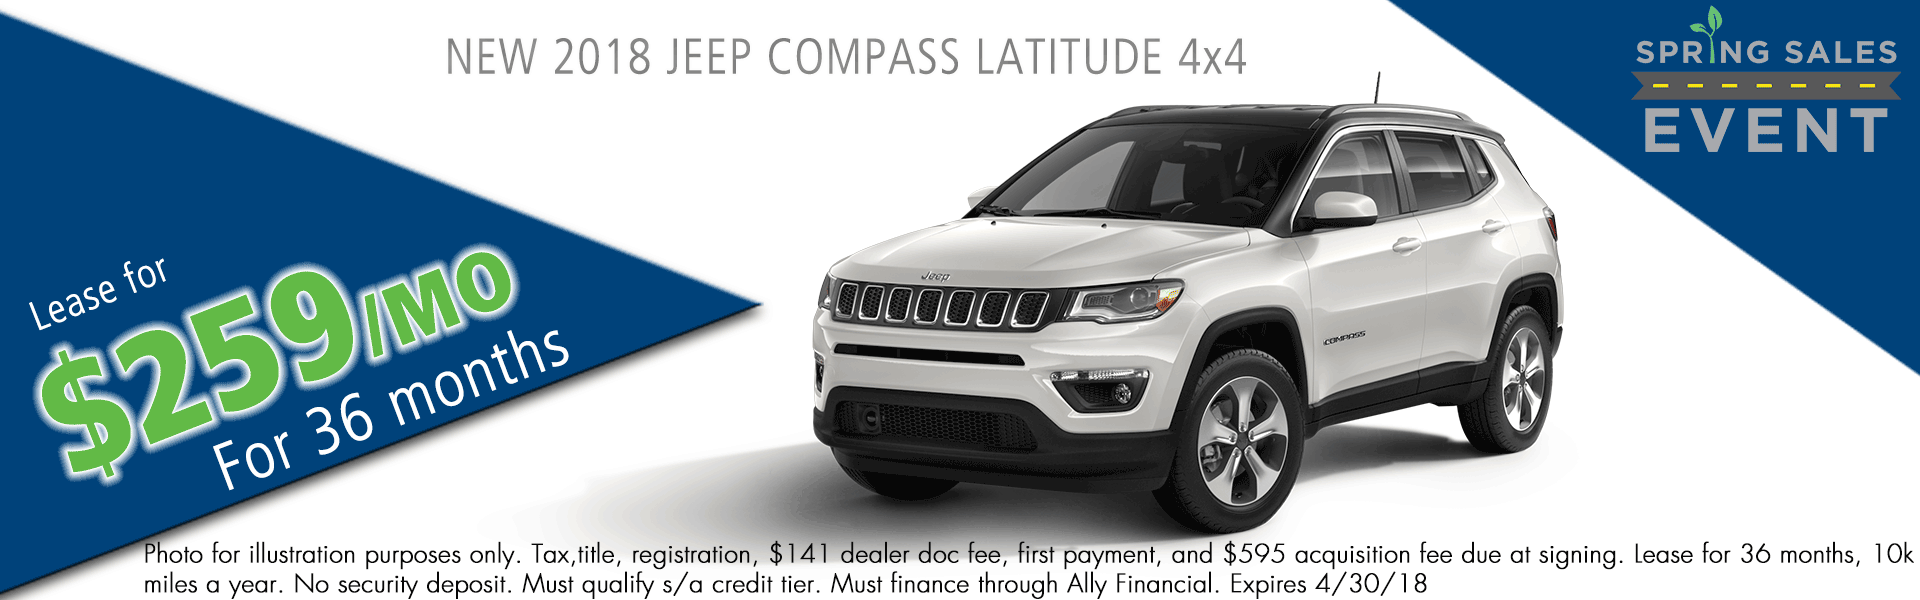 NEW 2018 JEEP COMPASS LATITUDE 4X4 carright auto 5408 university blvd moon, pa 15108 chrysler dodge jeep ram